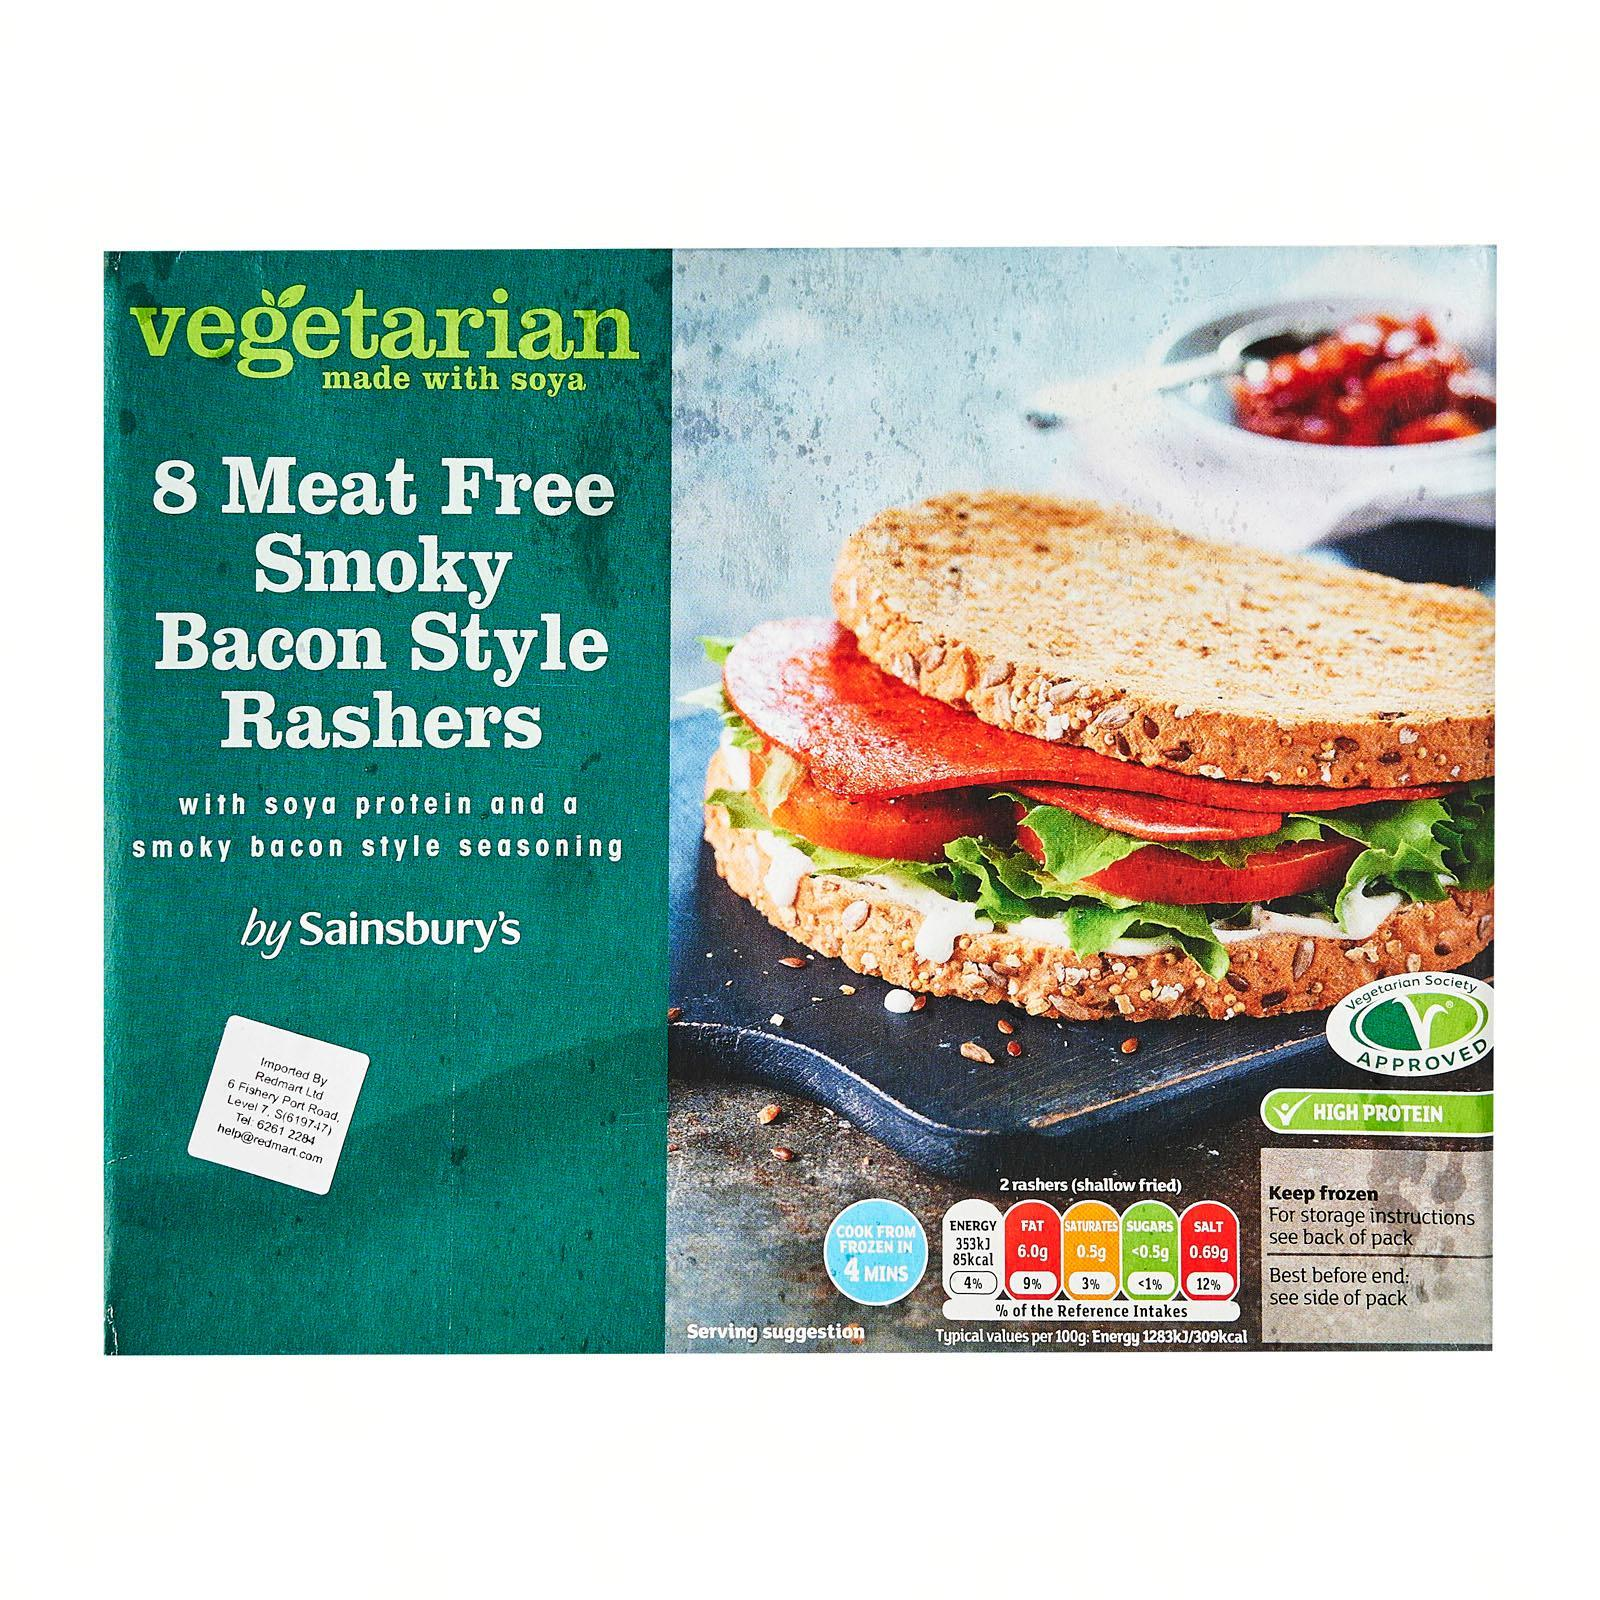 Sainsbury's Vegetarian Meat Free Smoky Bacon Rasher - Frozen